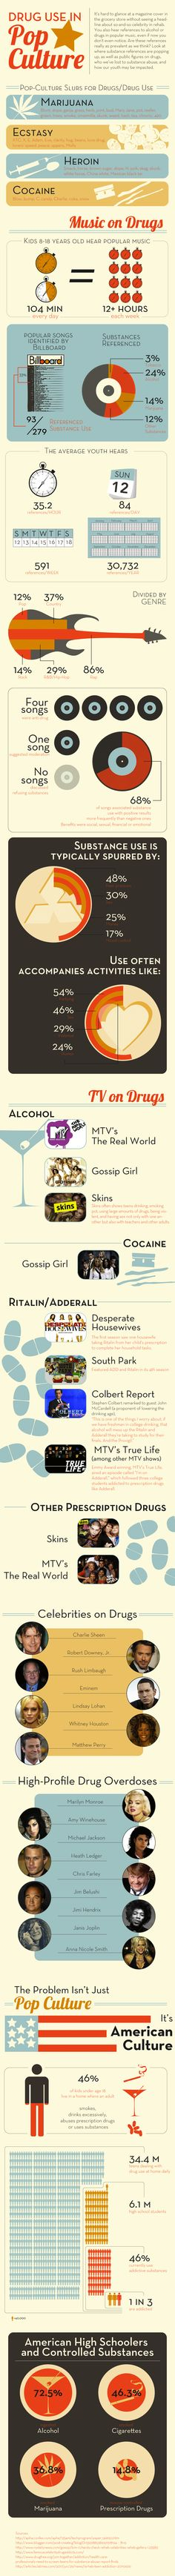 Drug Use in Pop Culture #Infographic #substanceabuse